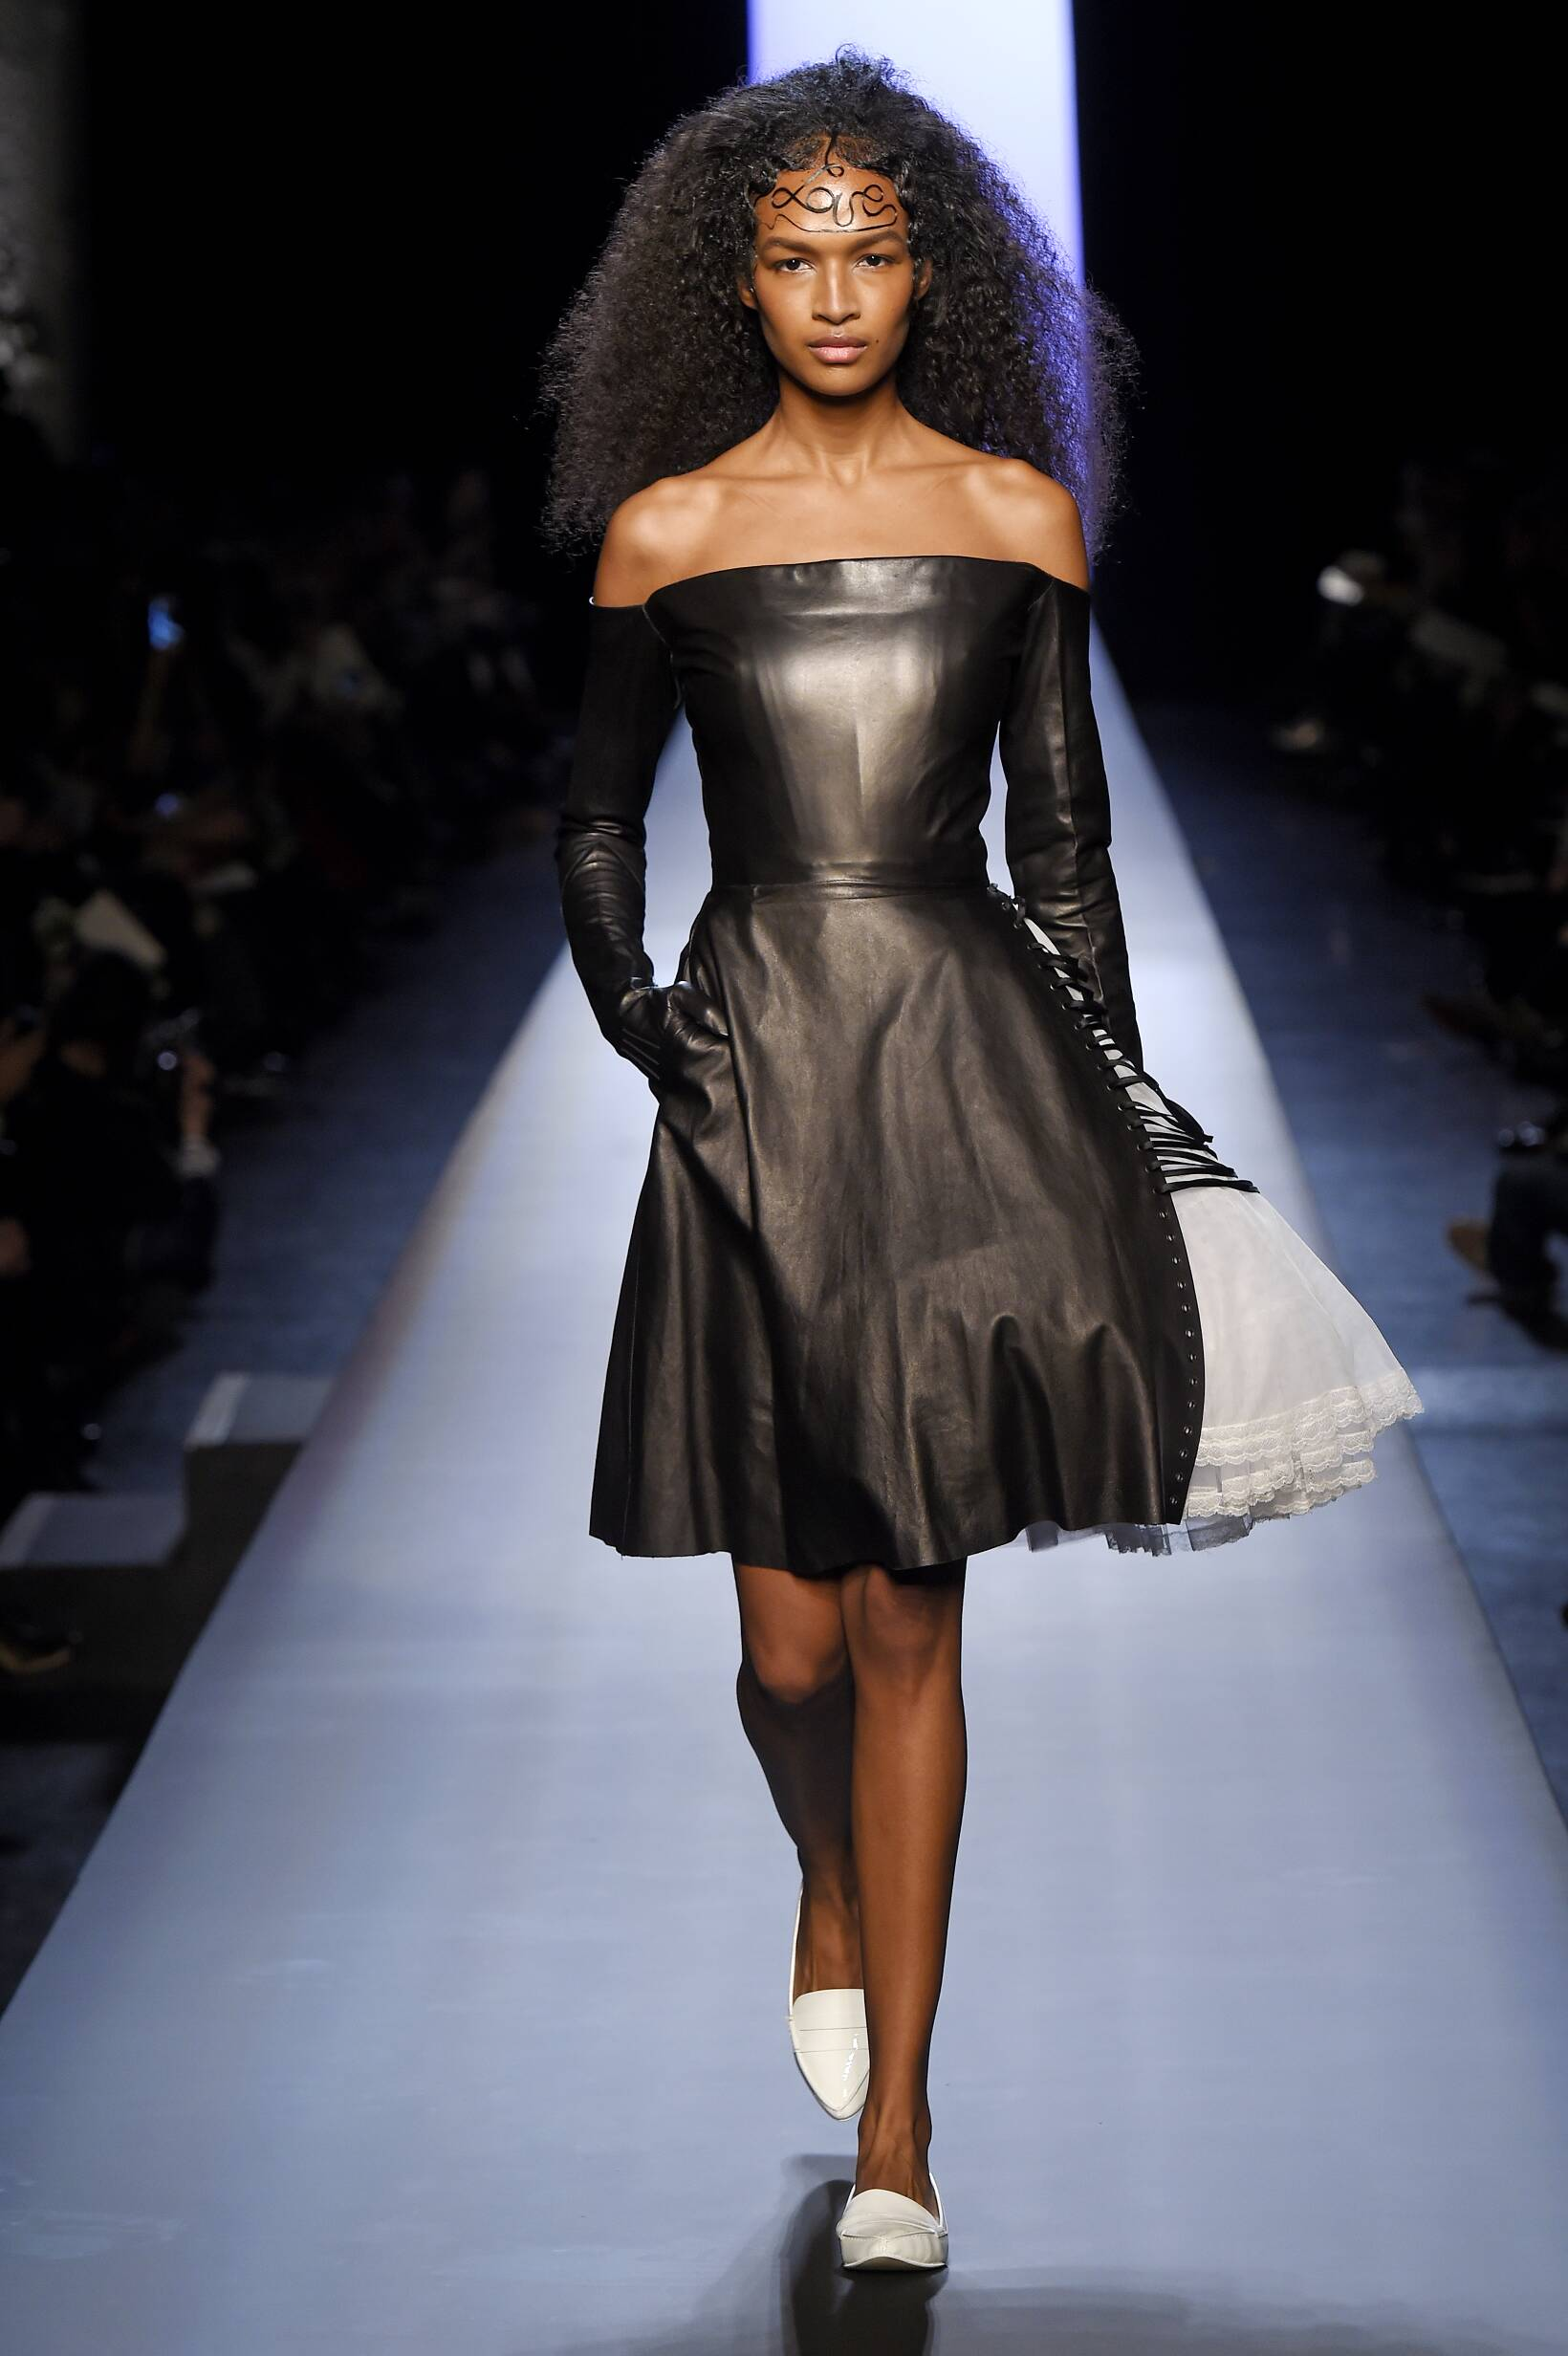 Jean Paul Gaultier Haute Couture Collection Woman Paris Fashion Week